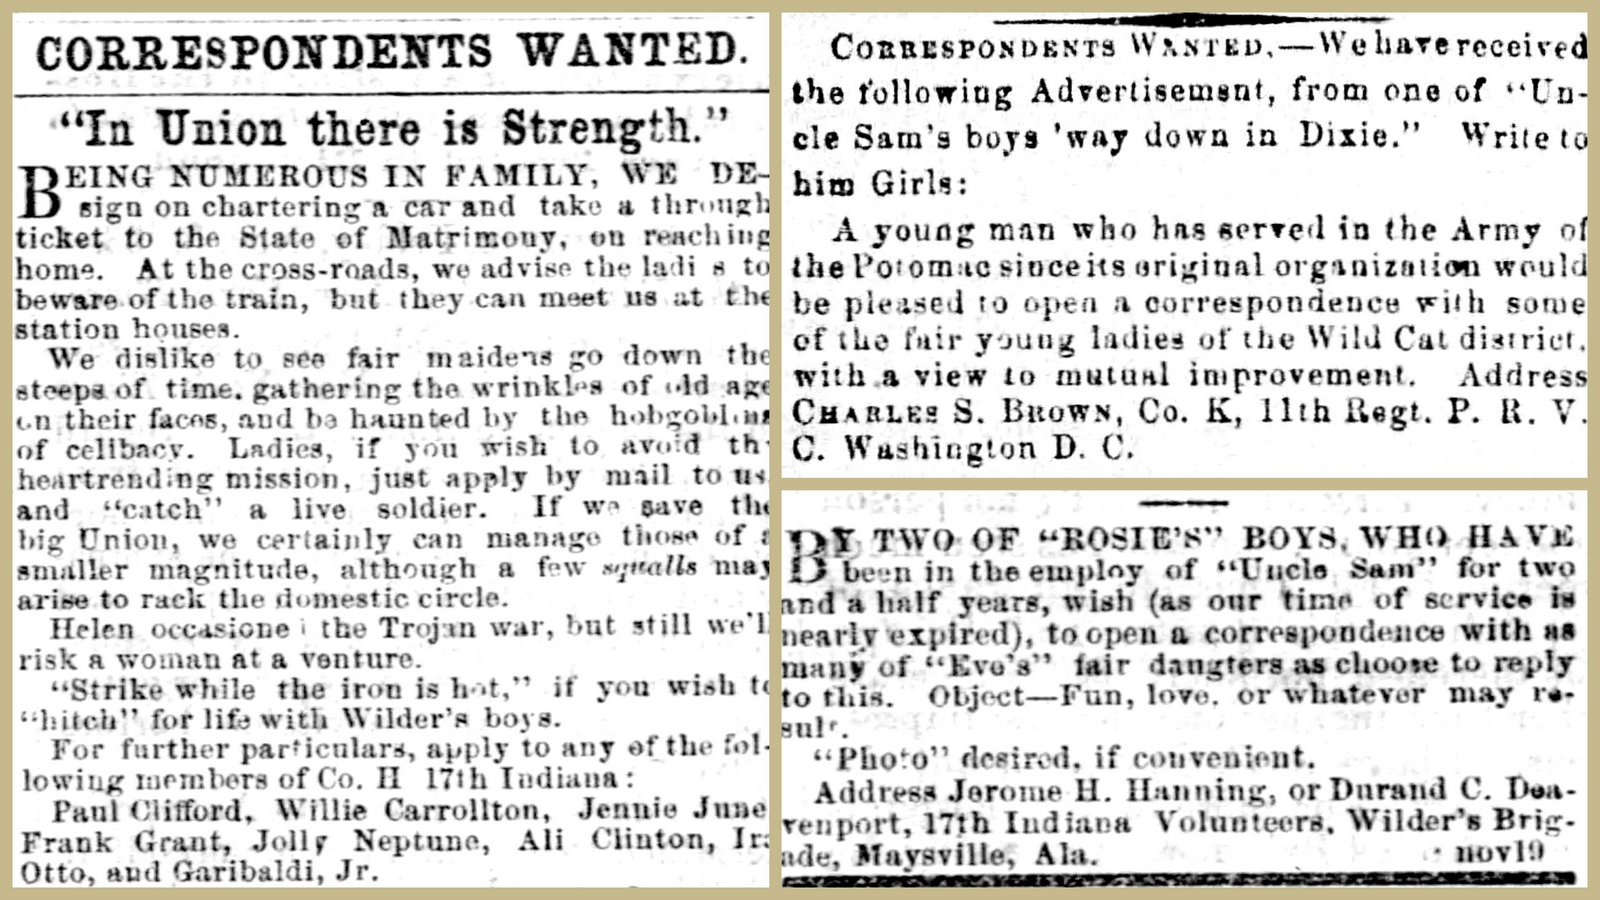 Old Civil War newspaper requests - Correspondents wanted (1860s)